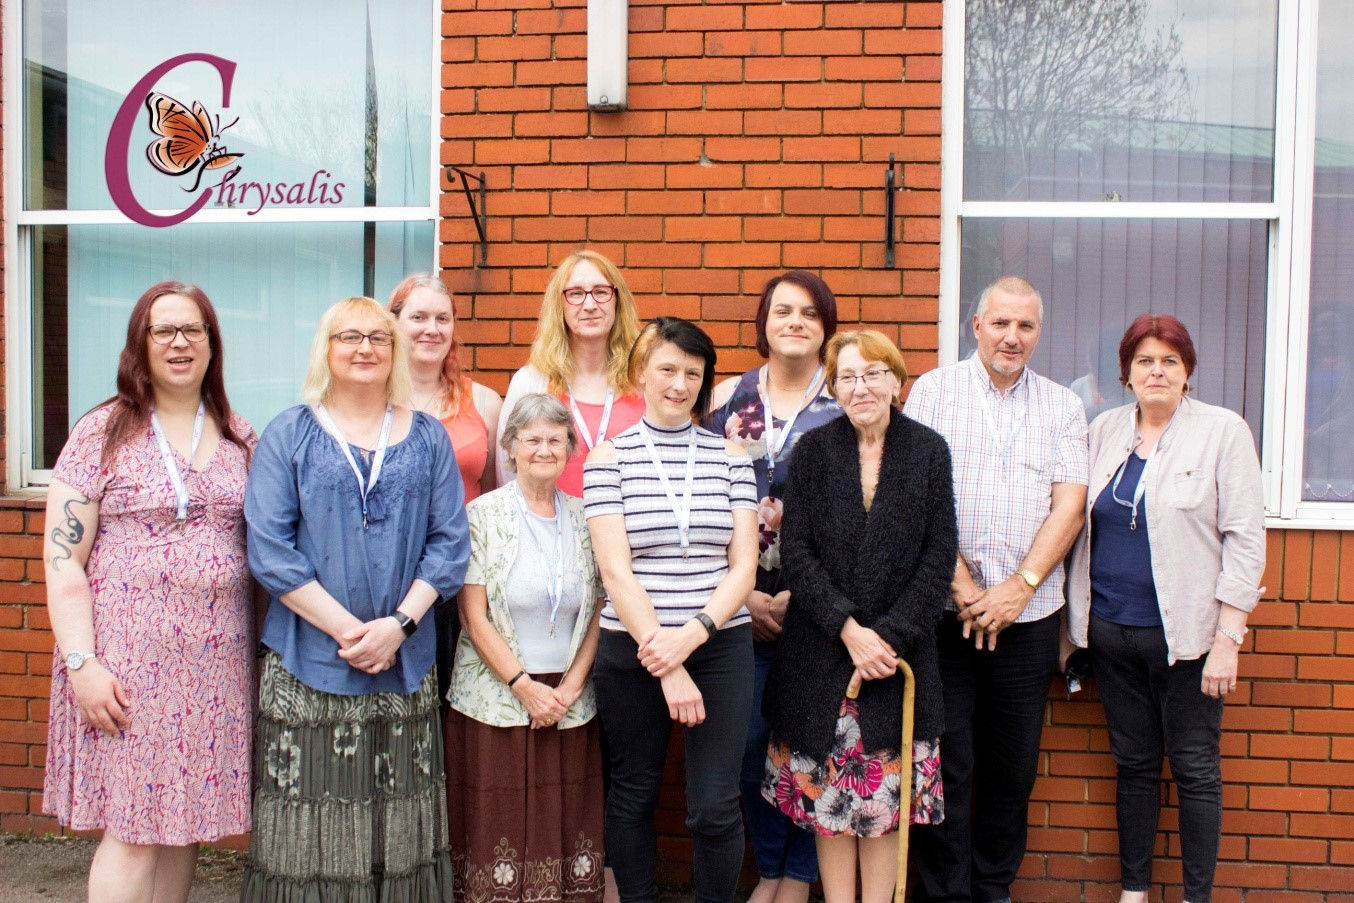 Chrysalis' new management board, from left to right Lennie, Steph, Deanna, Anne, Cassie, Andi, Sammy, Grecia, Jon, Mary